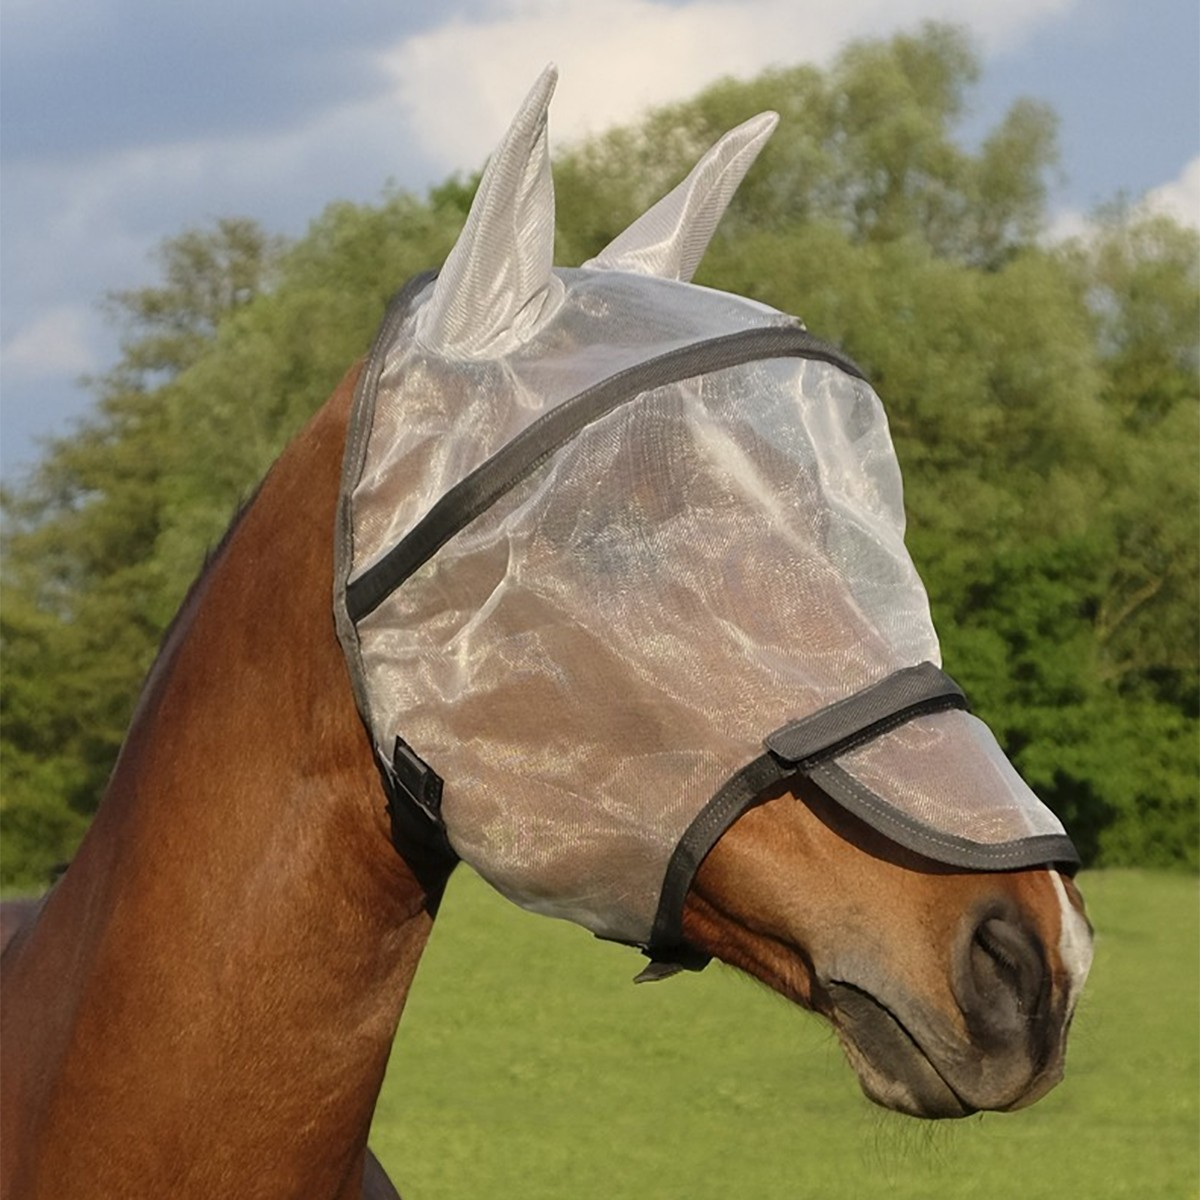 Equitheme Protec Fly Mask With Ears & Nose Protection